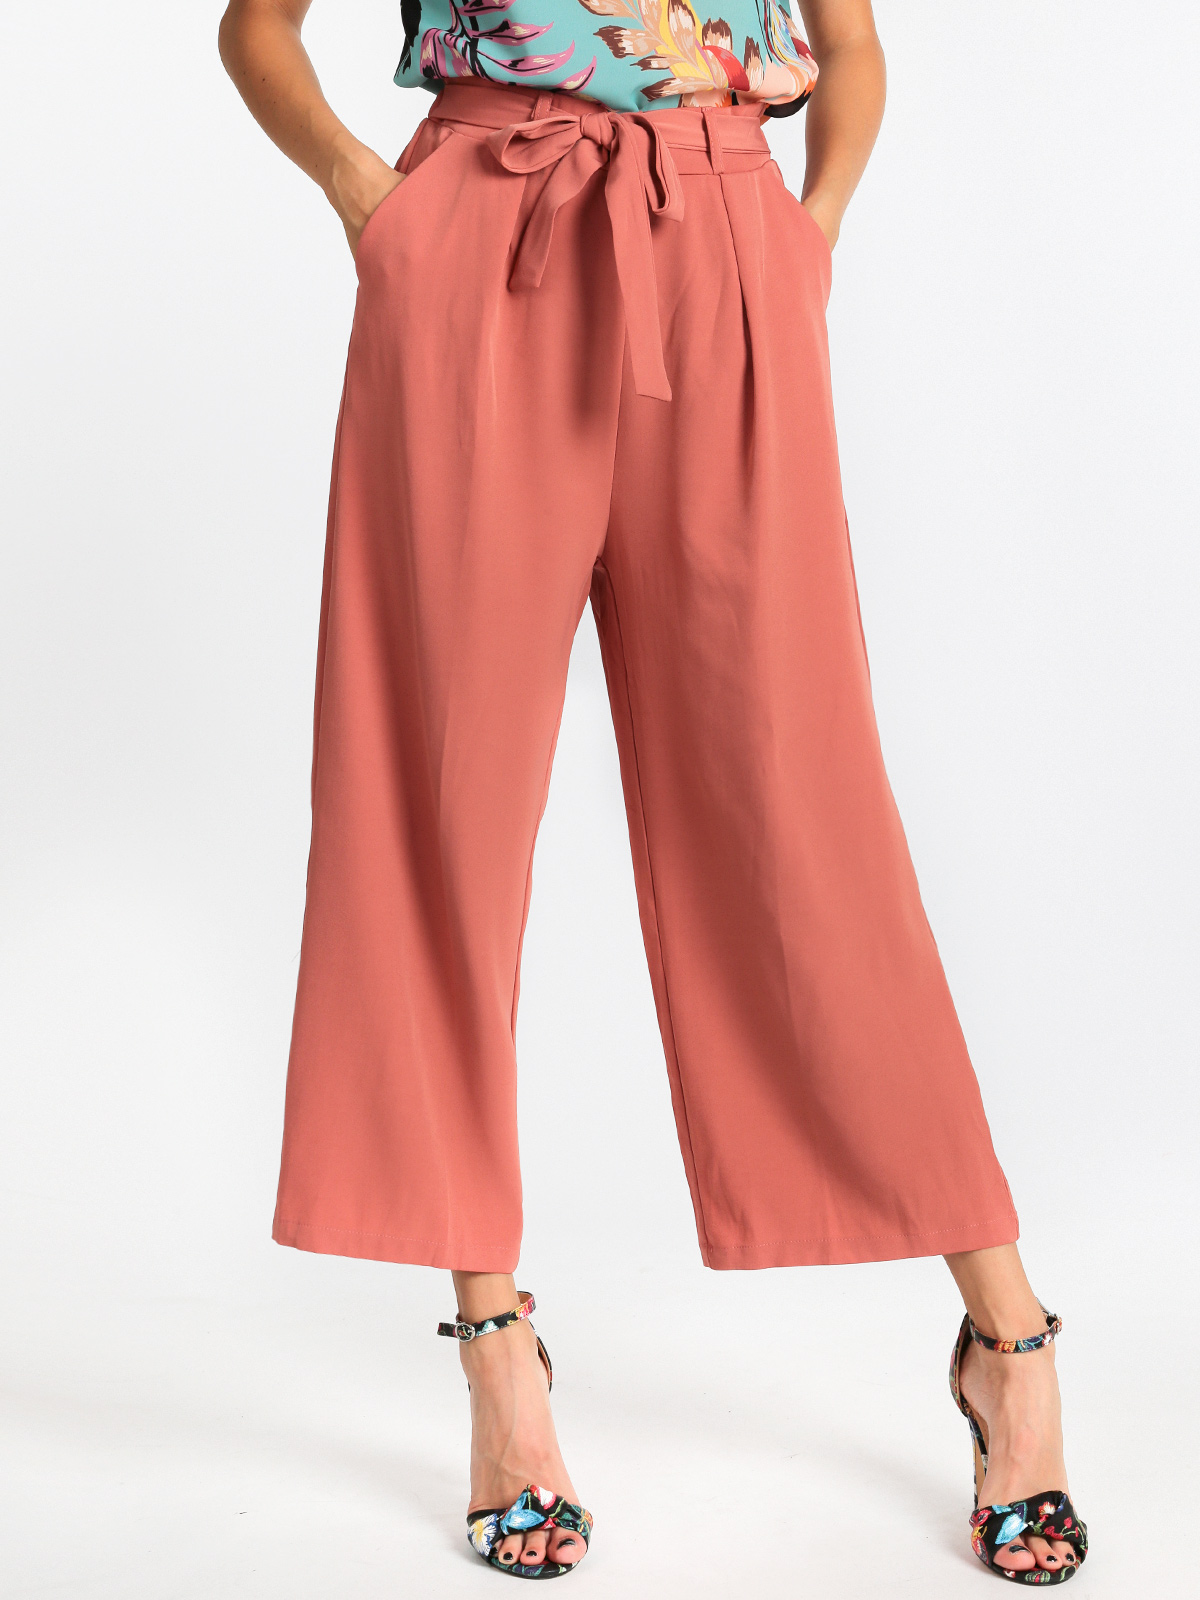 JESTOMS Palazzo Pants With Bow